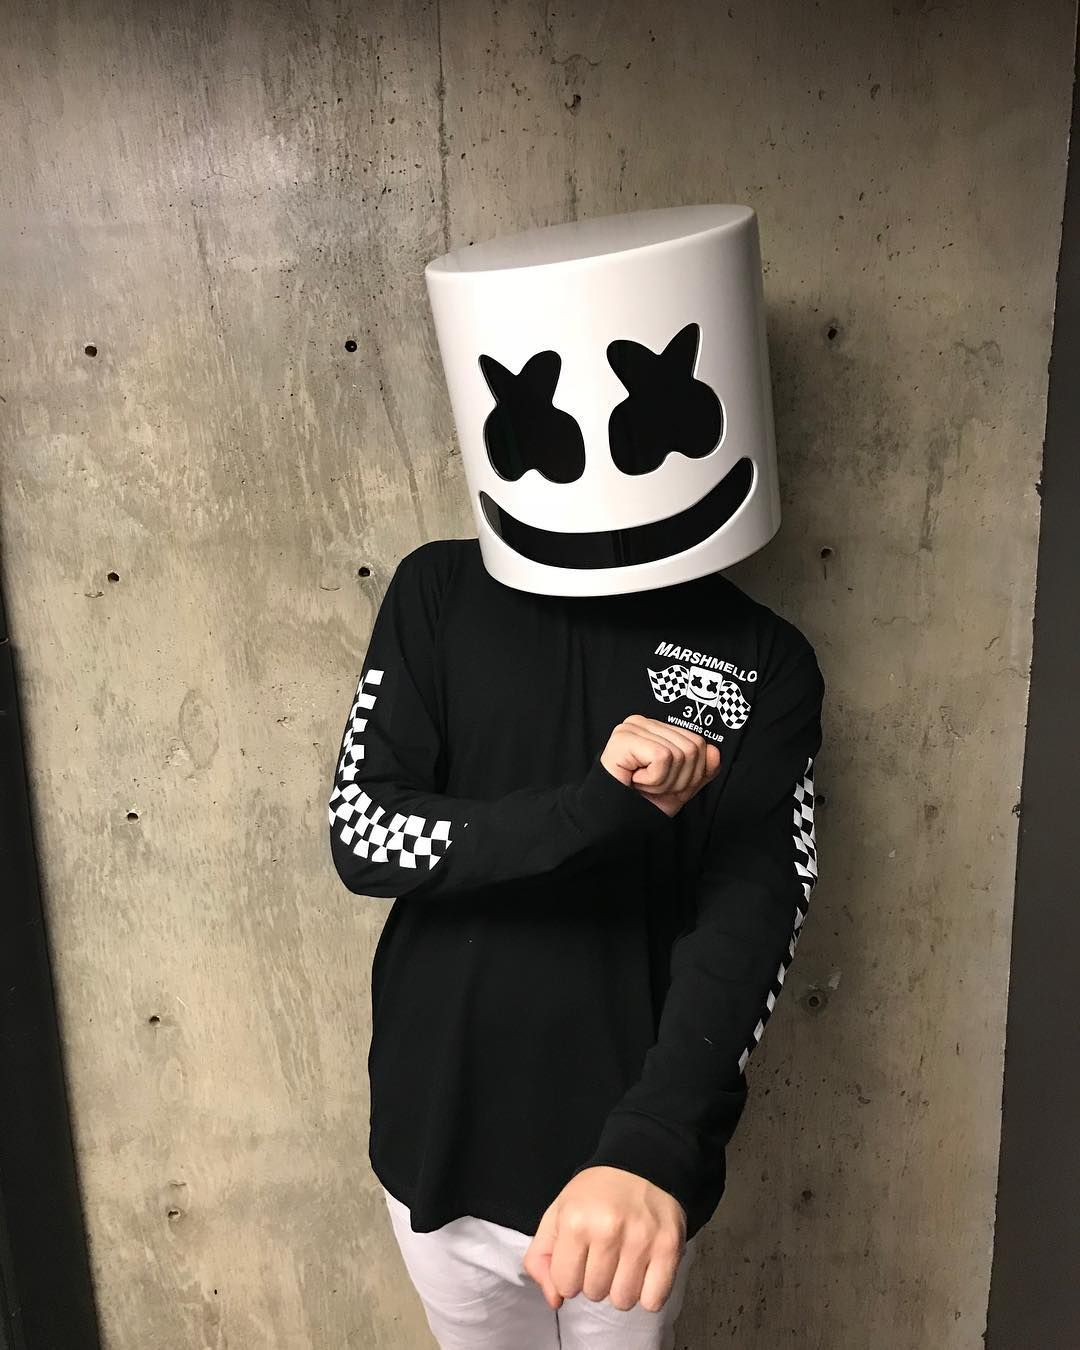 Black Shirt For Black Friday Head To Shop Marshmellomusic Com To See My New Line Enter Code Mellogang For 20 Off L Marshmallow Pictures Marshmallow Dj Art